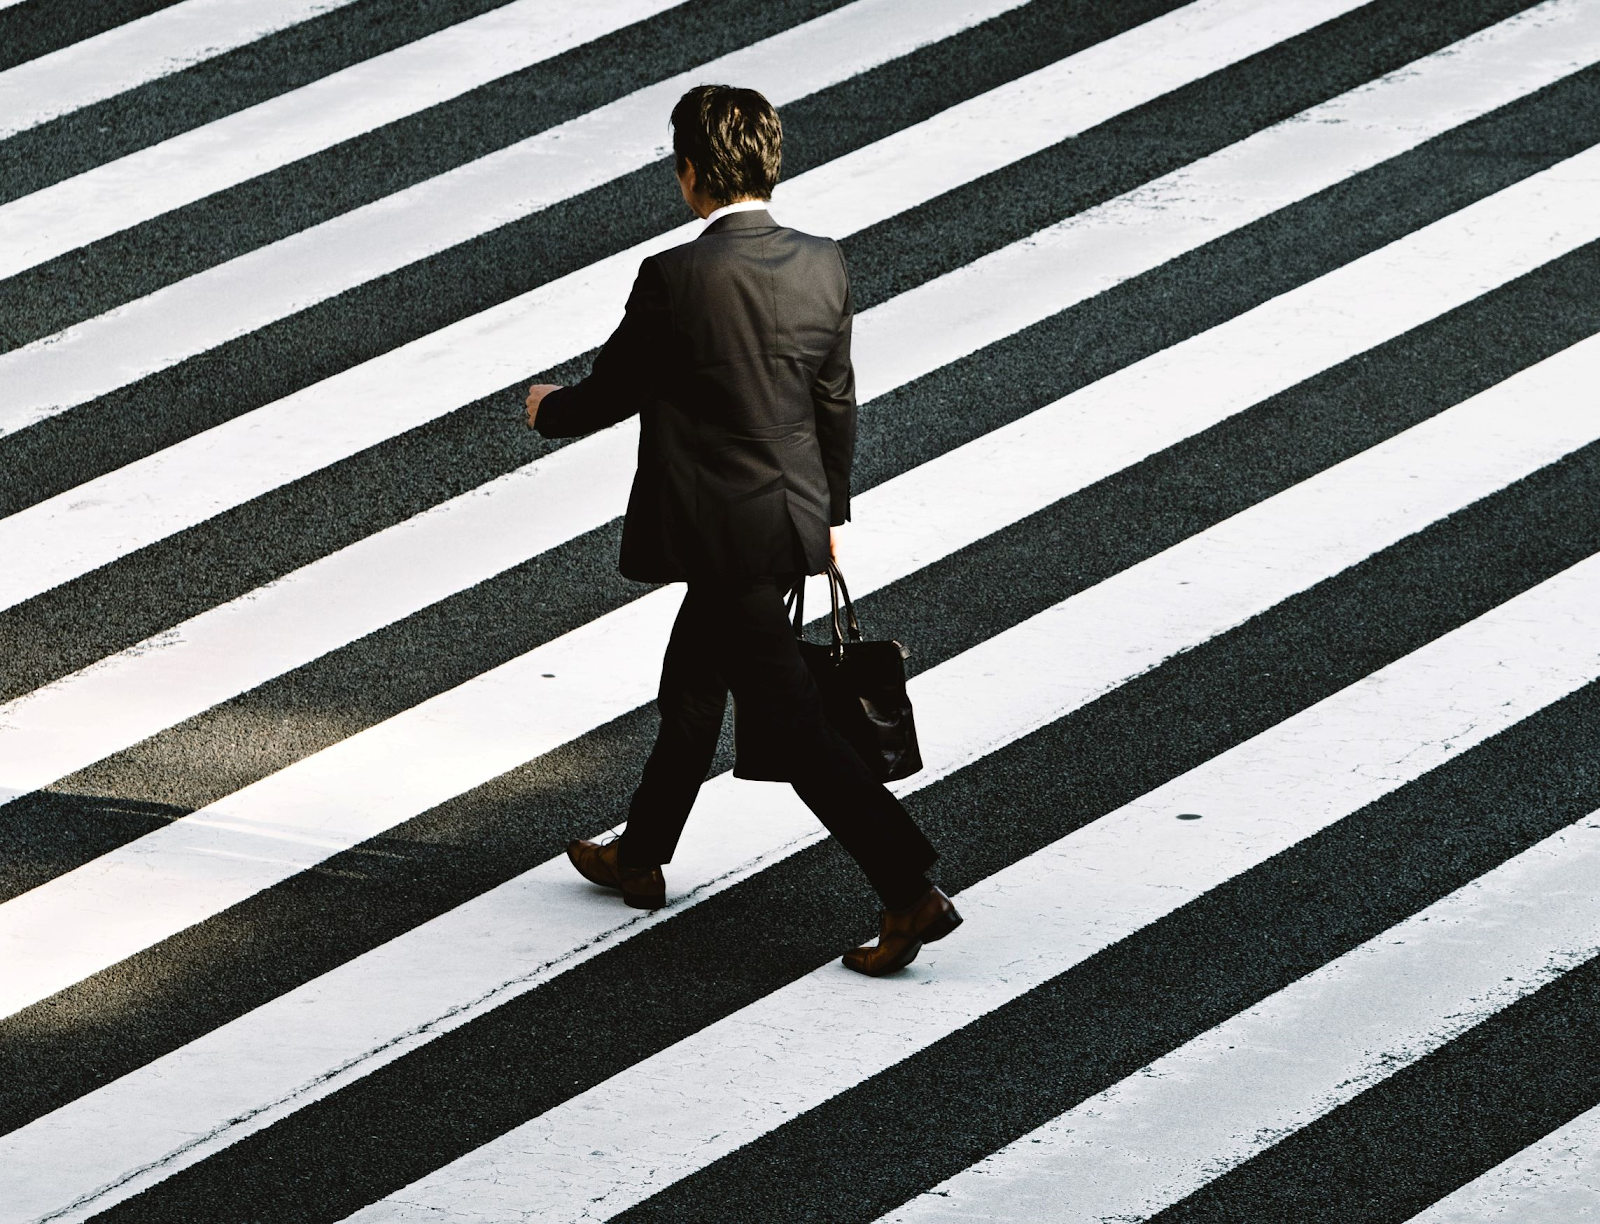 Man in a suit with a briefcase crossing the road en route to a case interview.